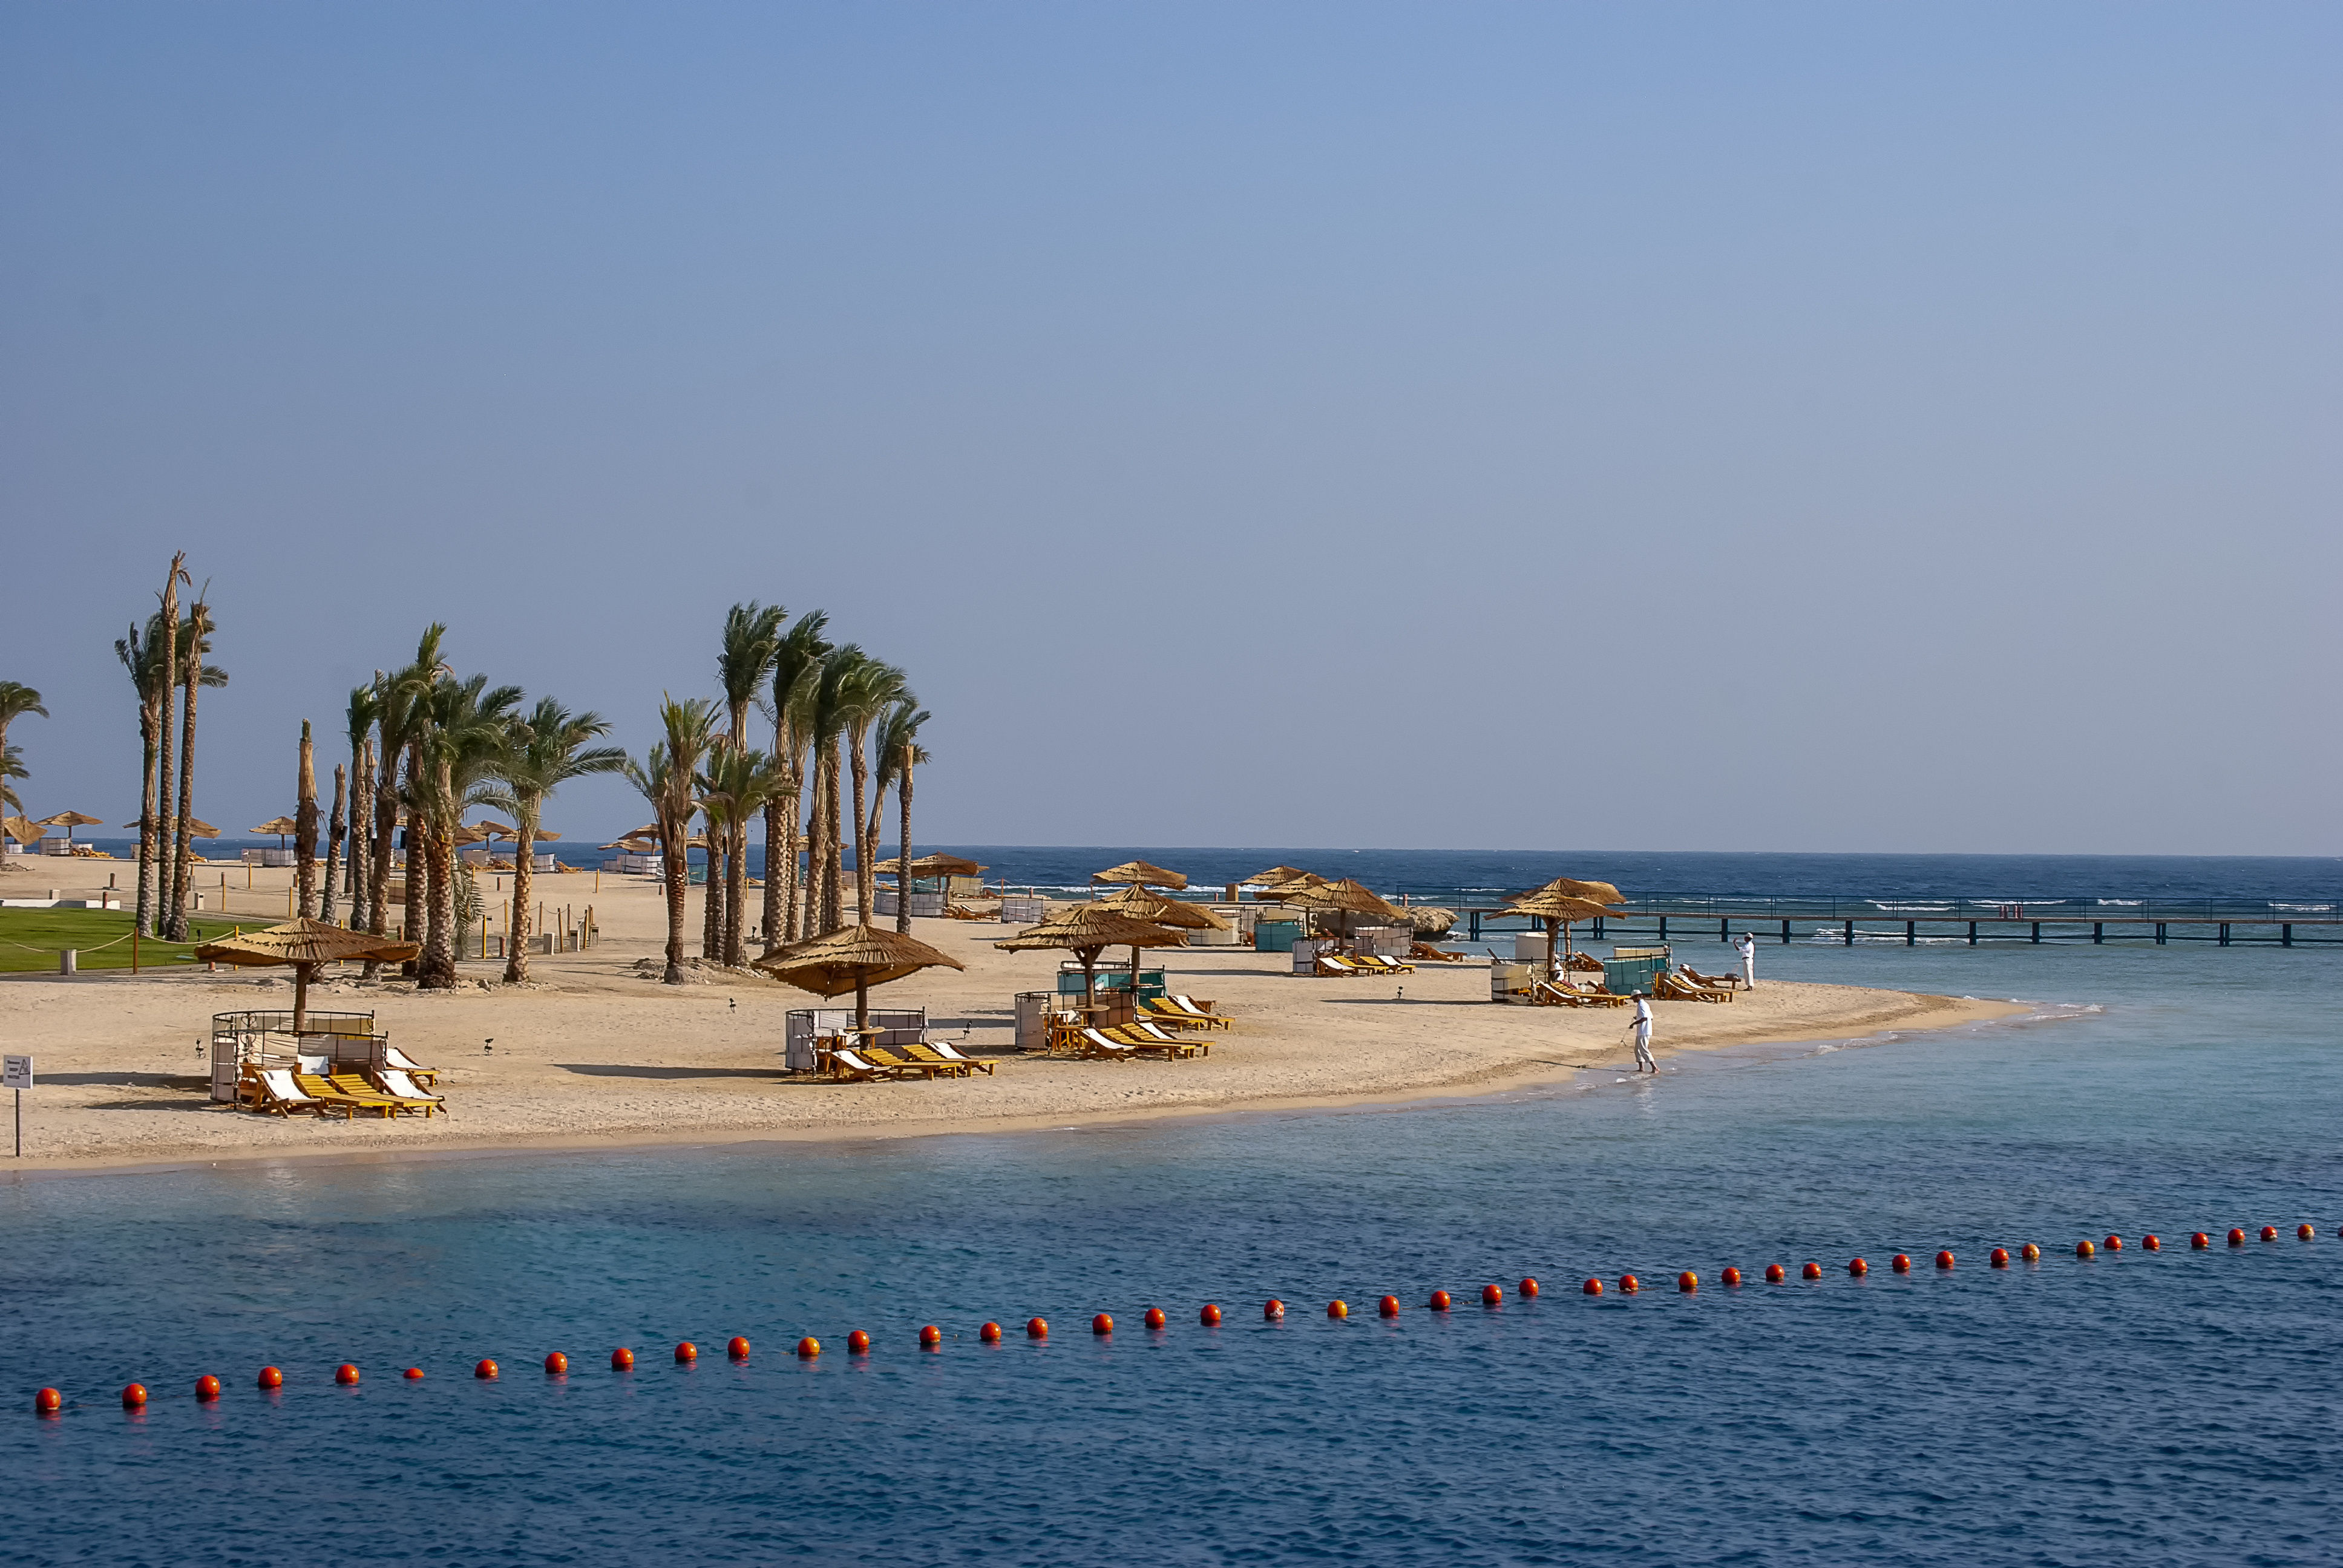 Palm trees and beach umbrellas on Red Sea holiday resort of Port Ghalib in Egypt.